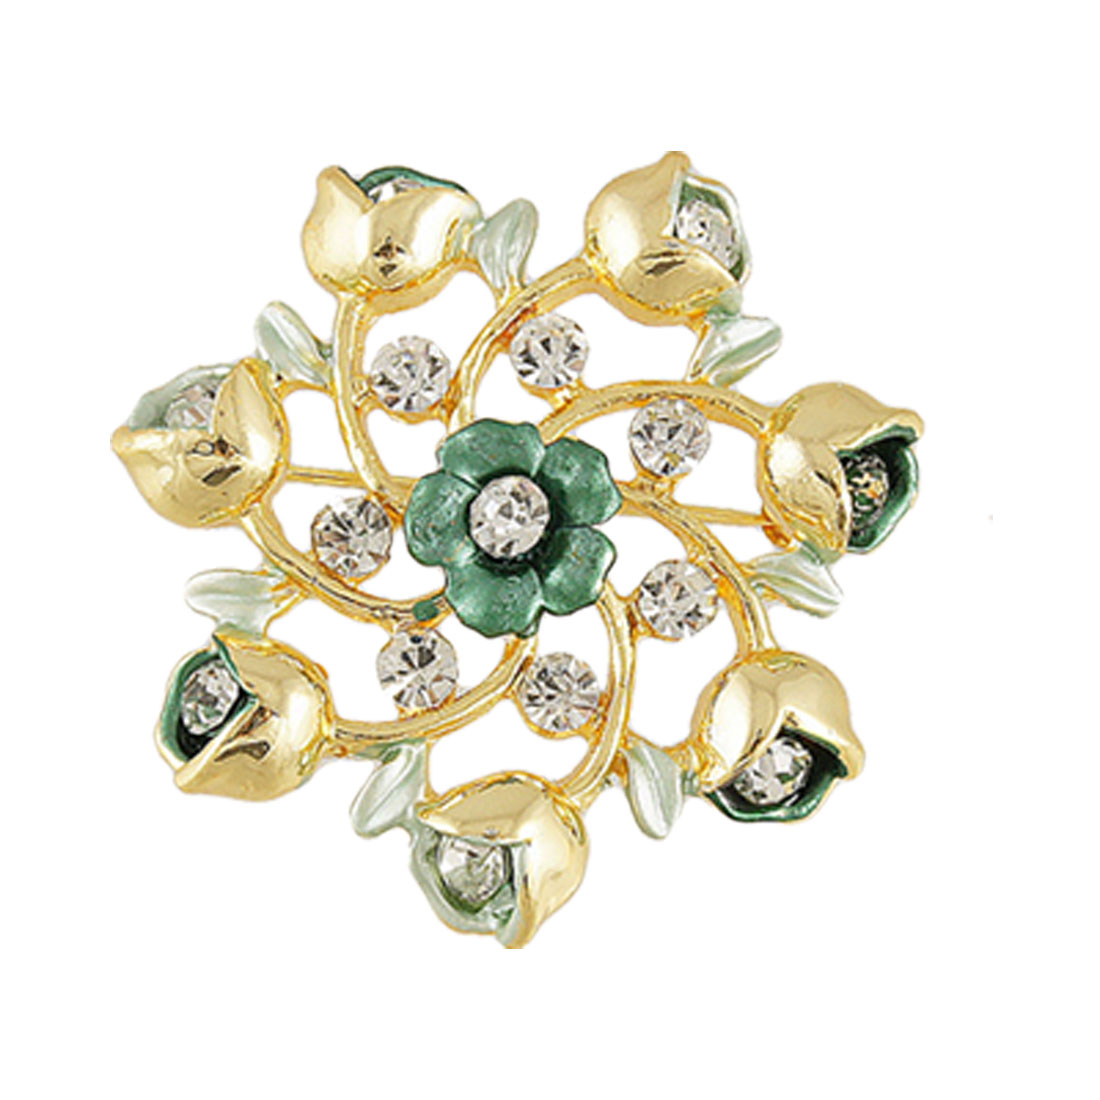 Glitter Rhinestone Inlaid Green Floral Design Safety Pin Brooch Gift